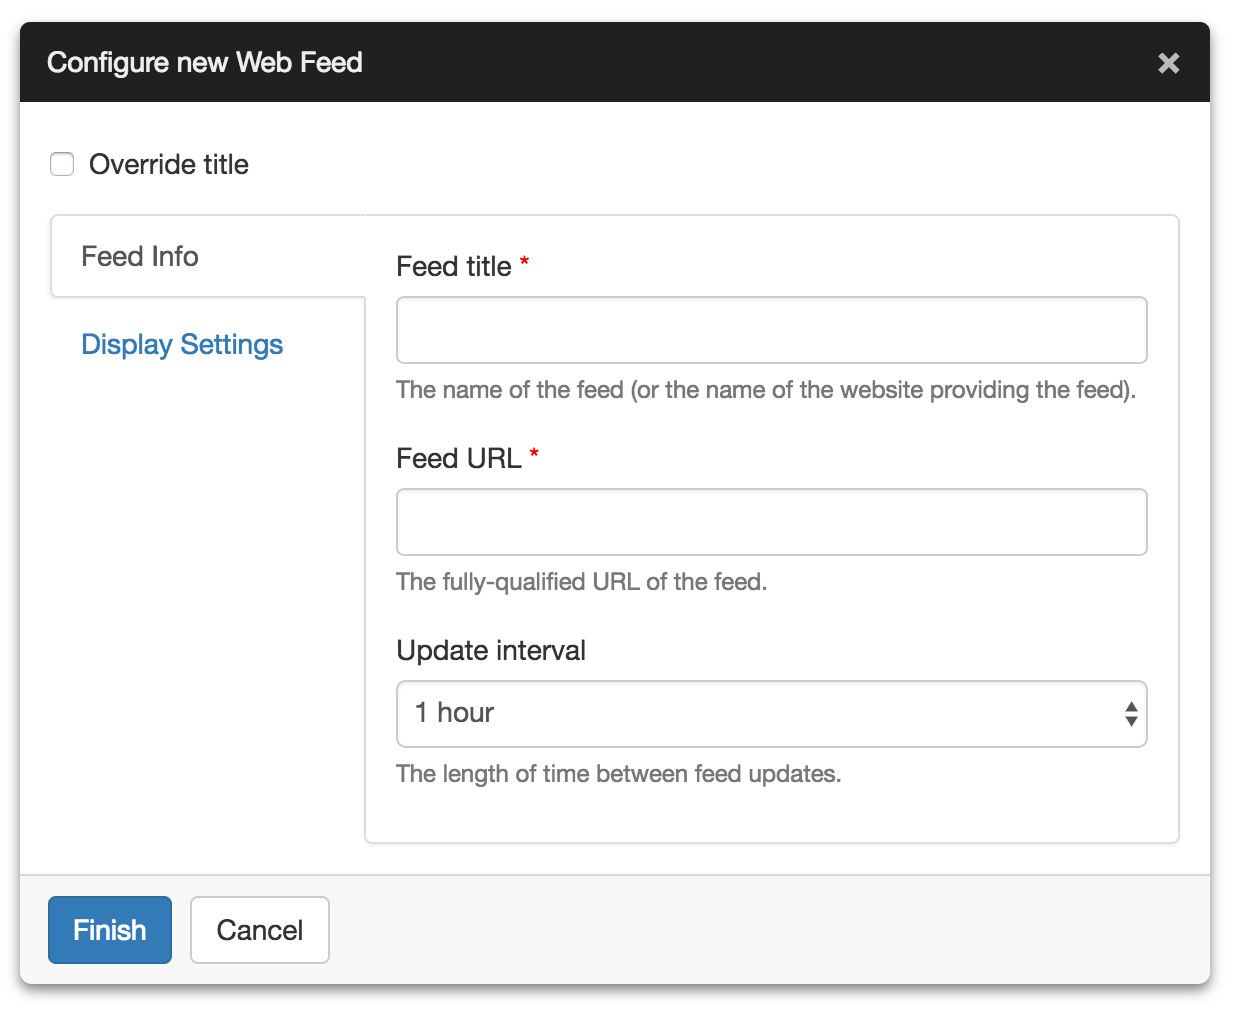 Configure Web Feed Settings